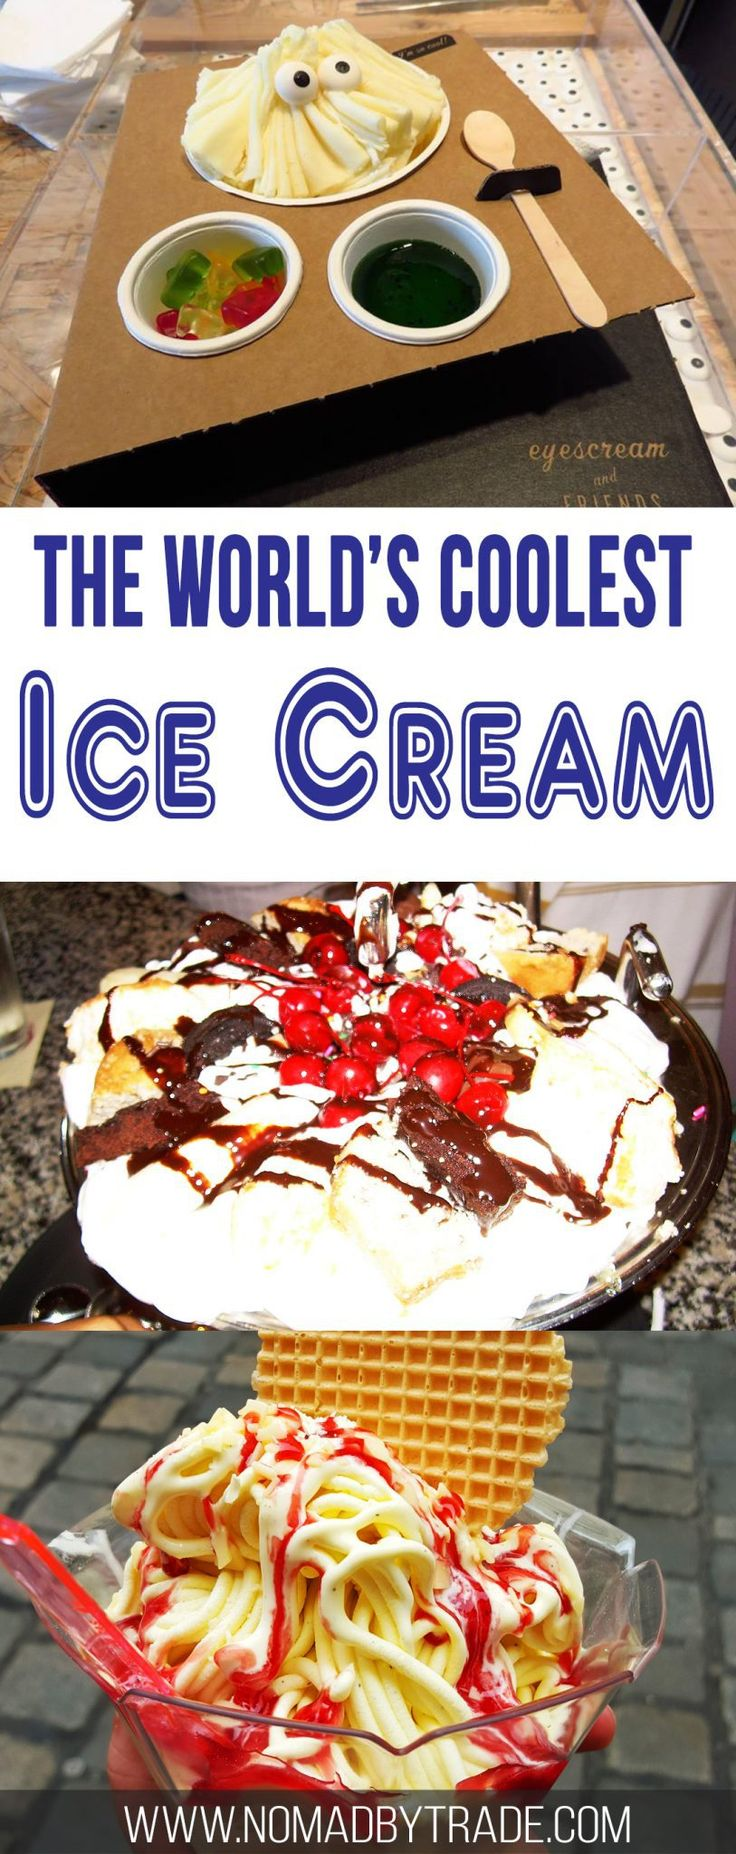 Globetrotting travel bloggers from around the world share the coolest ice creams they've ever had. #Foodie | #IceCream | #desserts